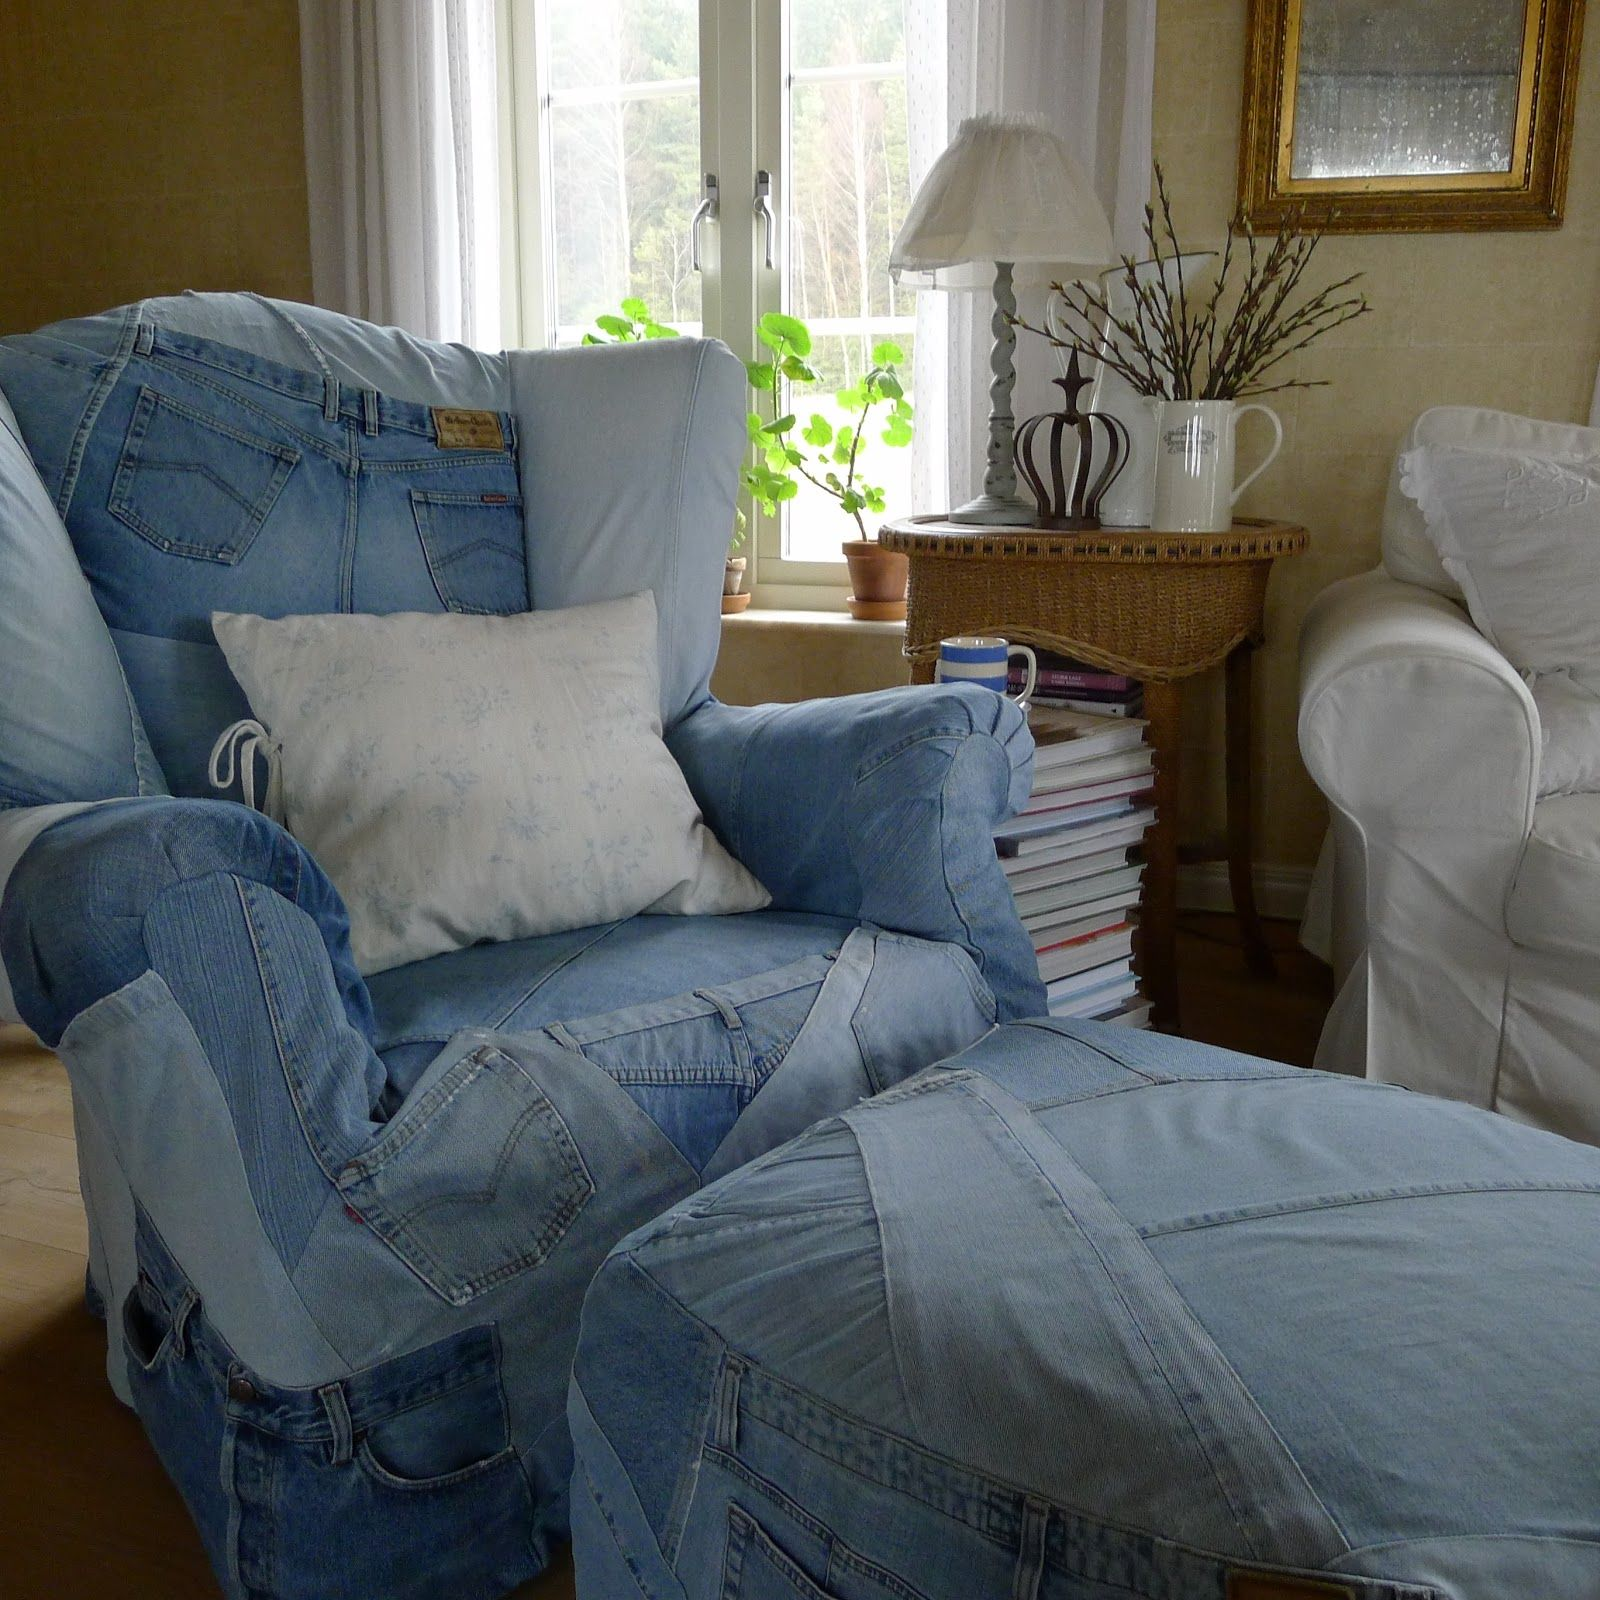 Denim chair and ottoman slipcovers by mia in norway inspired by ralph lauren